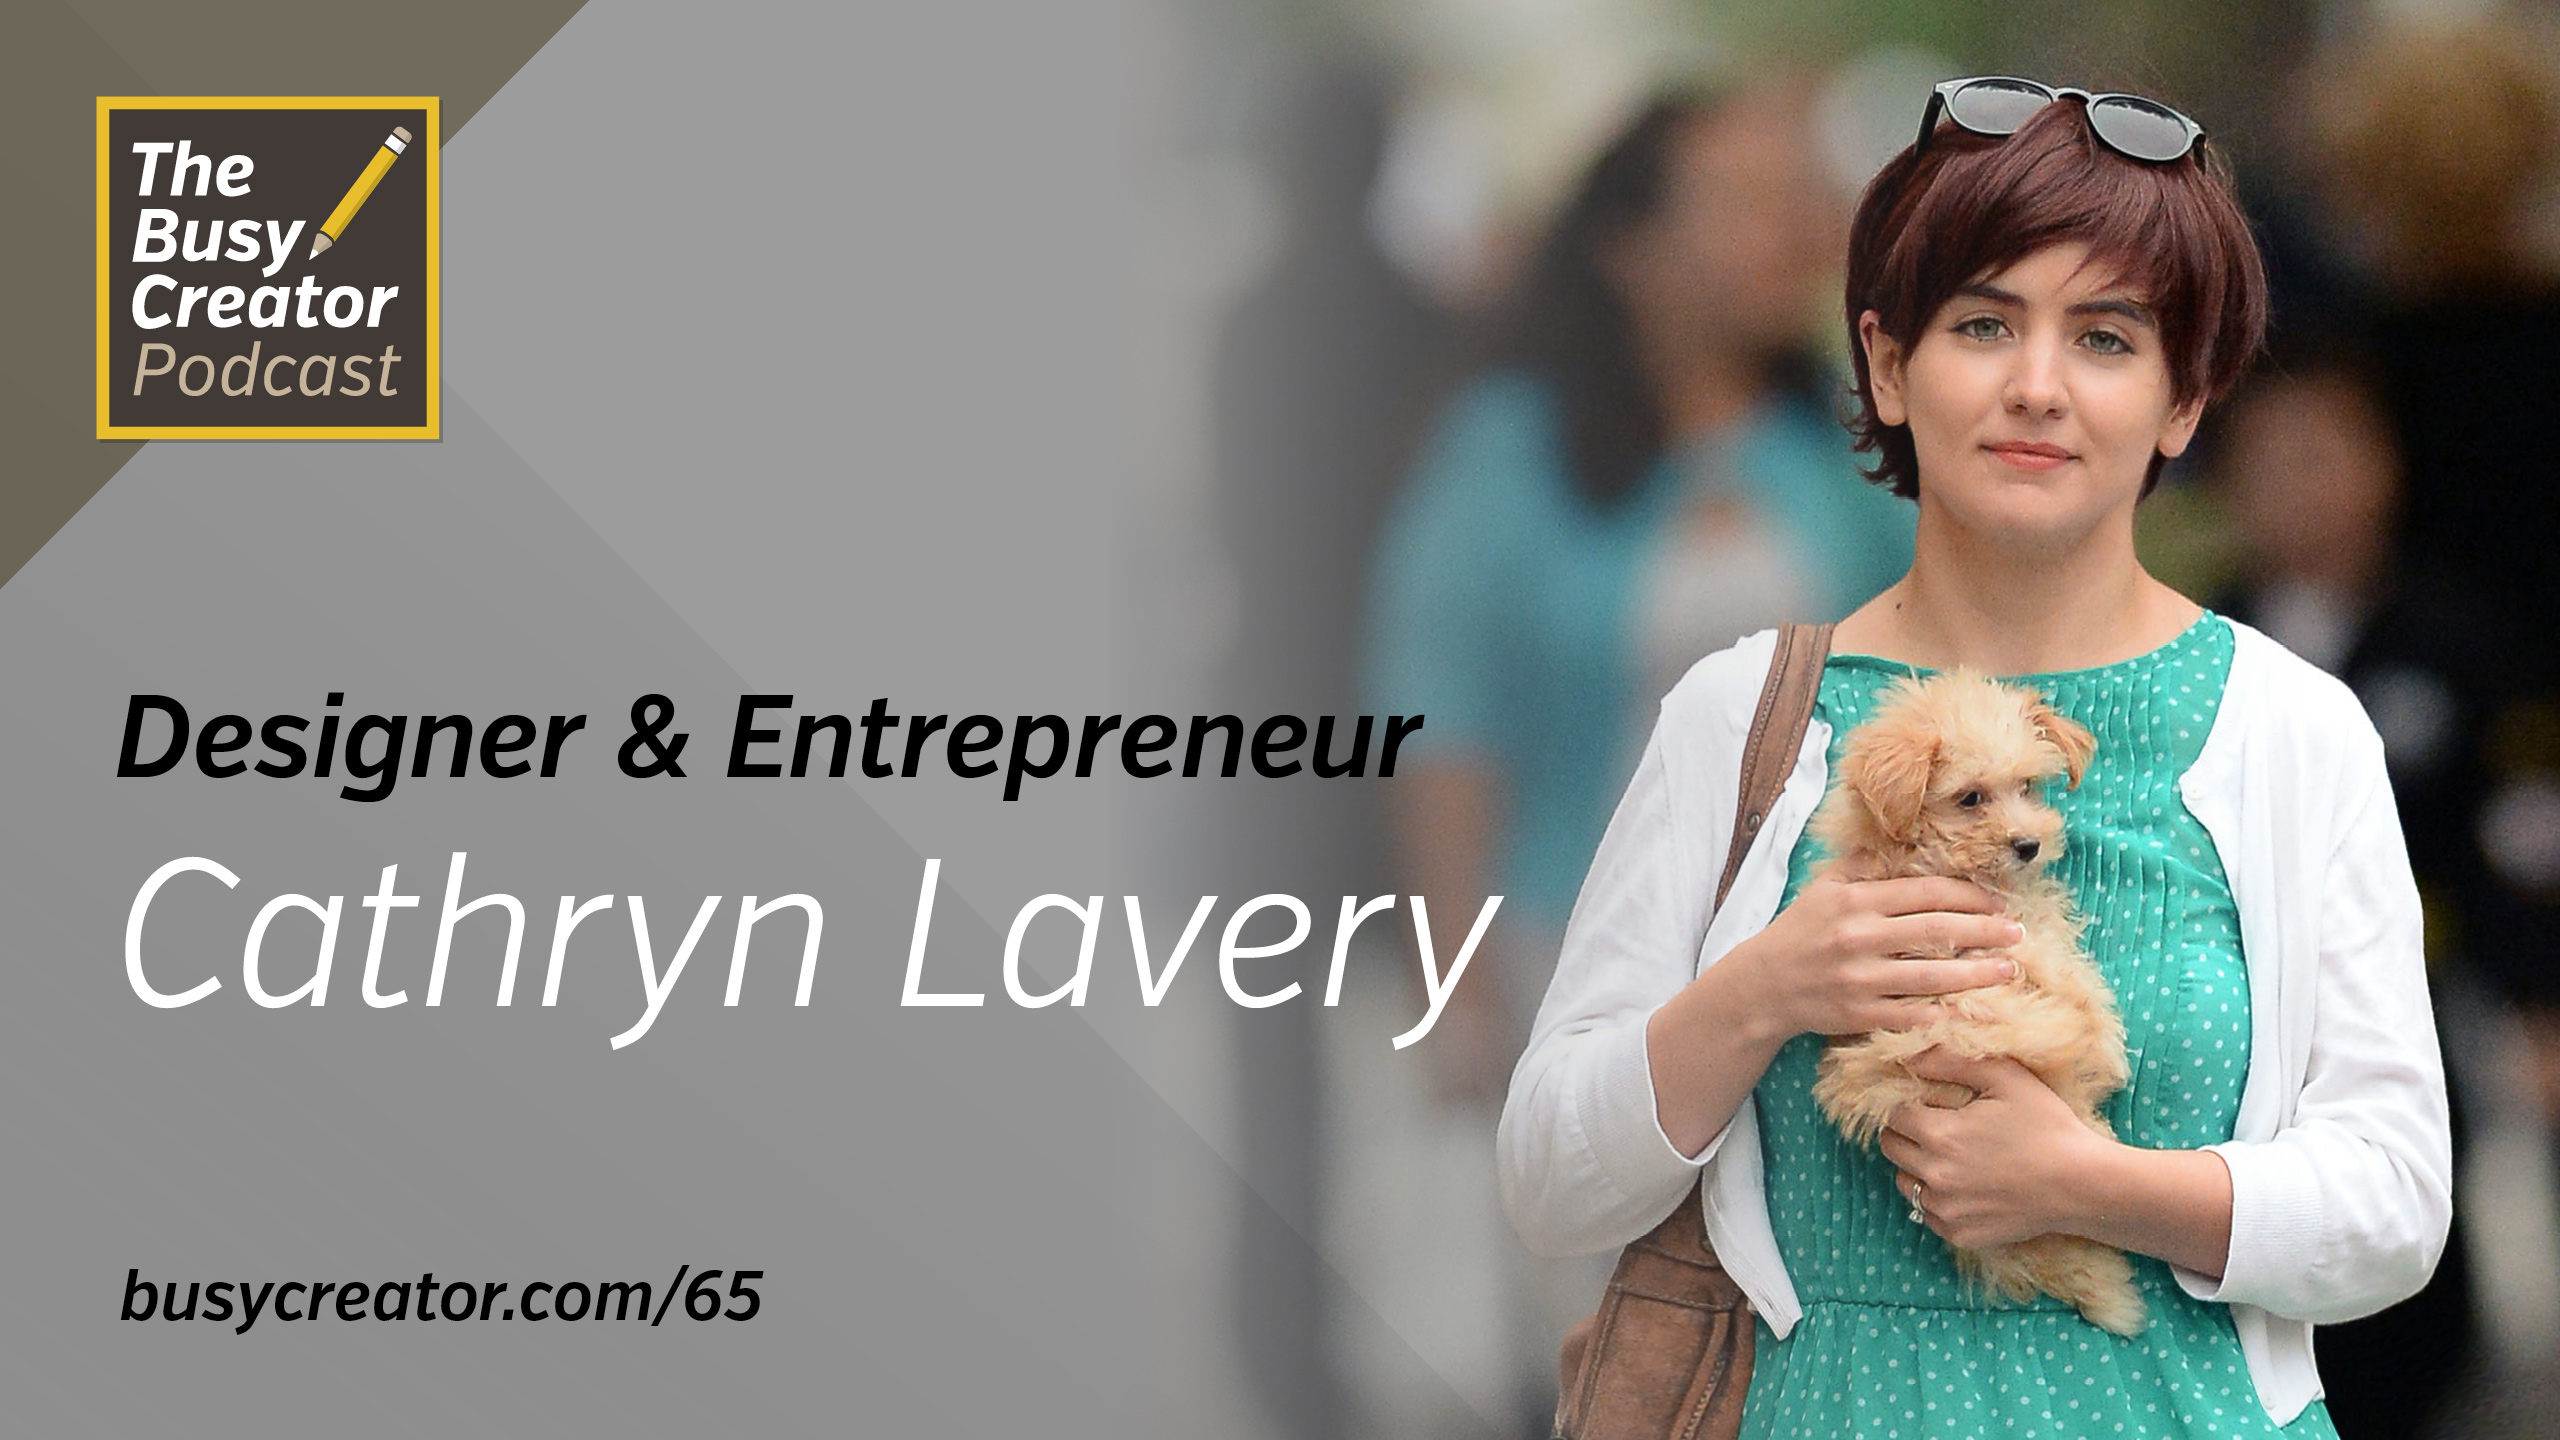 Designer & Entrepreneur Cathryn Lavery Shares Her Personal Productivity Habits, Tactics for a Successful Kickstarter Launch